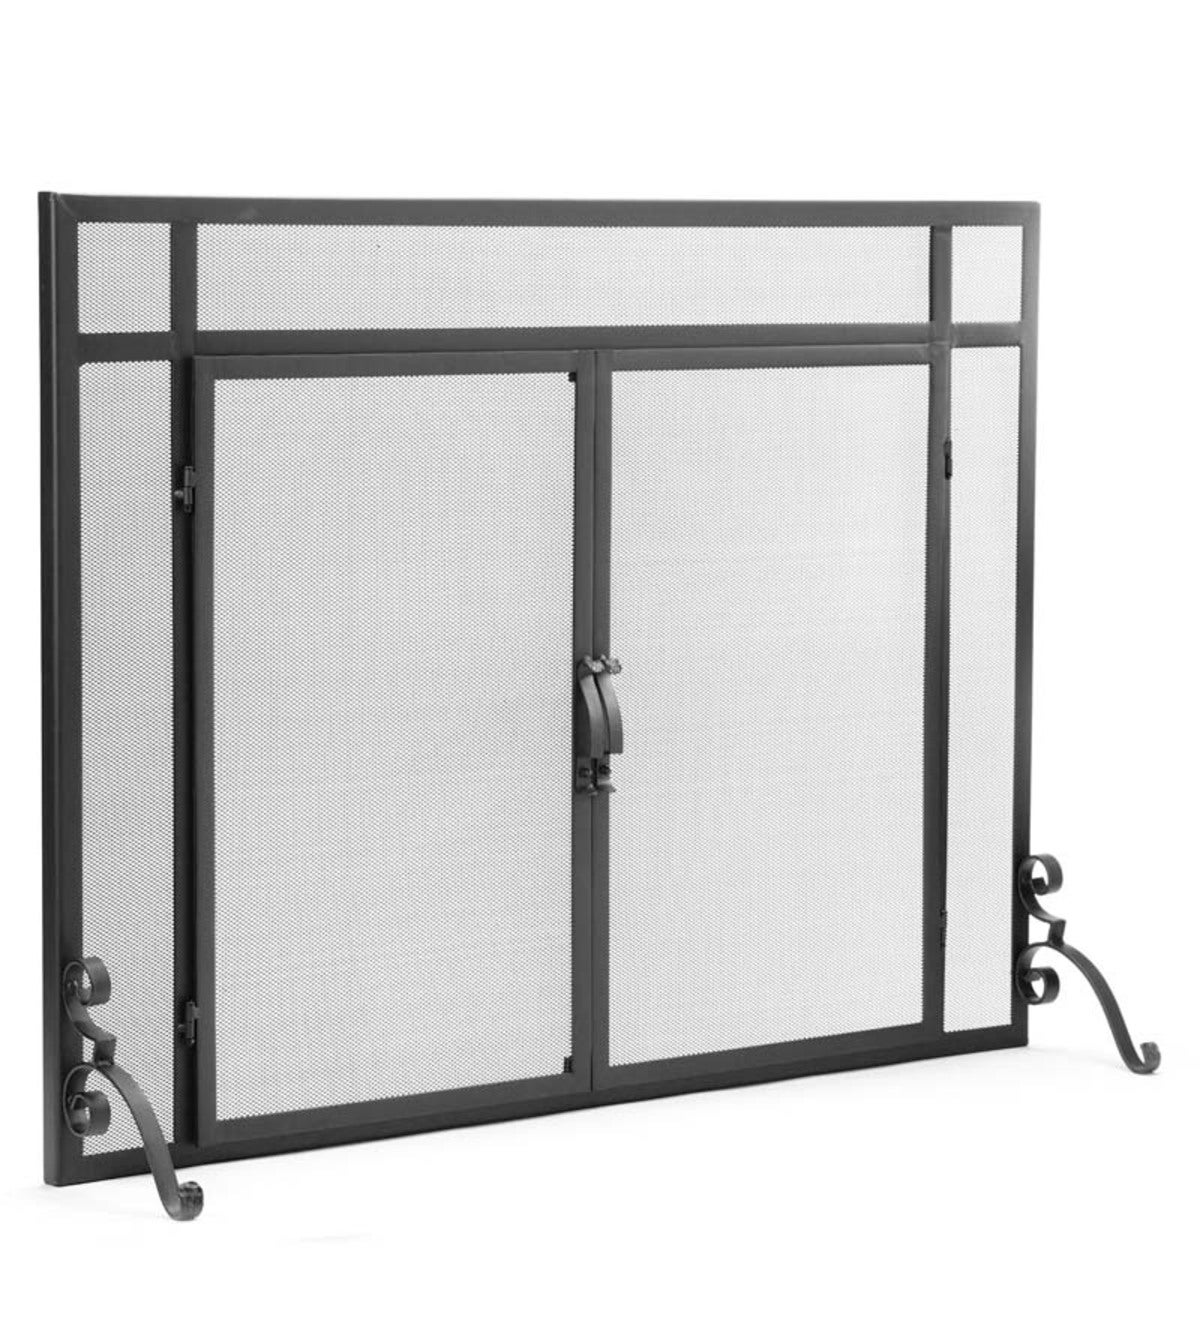 "Flat Guard Fire Screens With Doors in Solid Steel, 39""W x 31""H - Black"